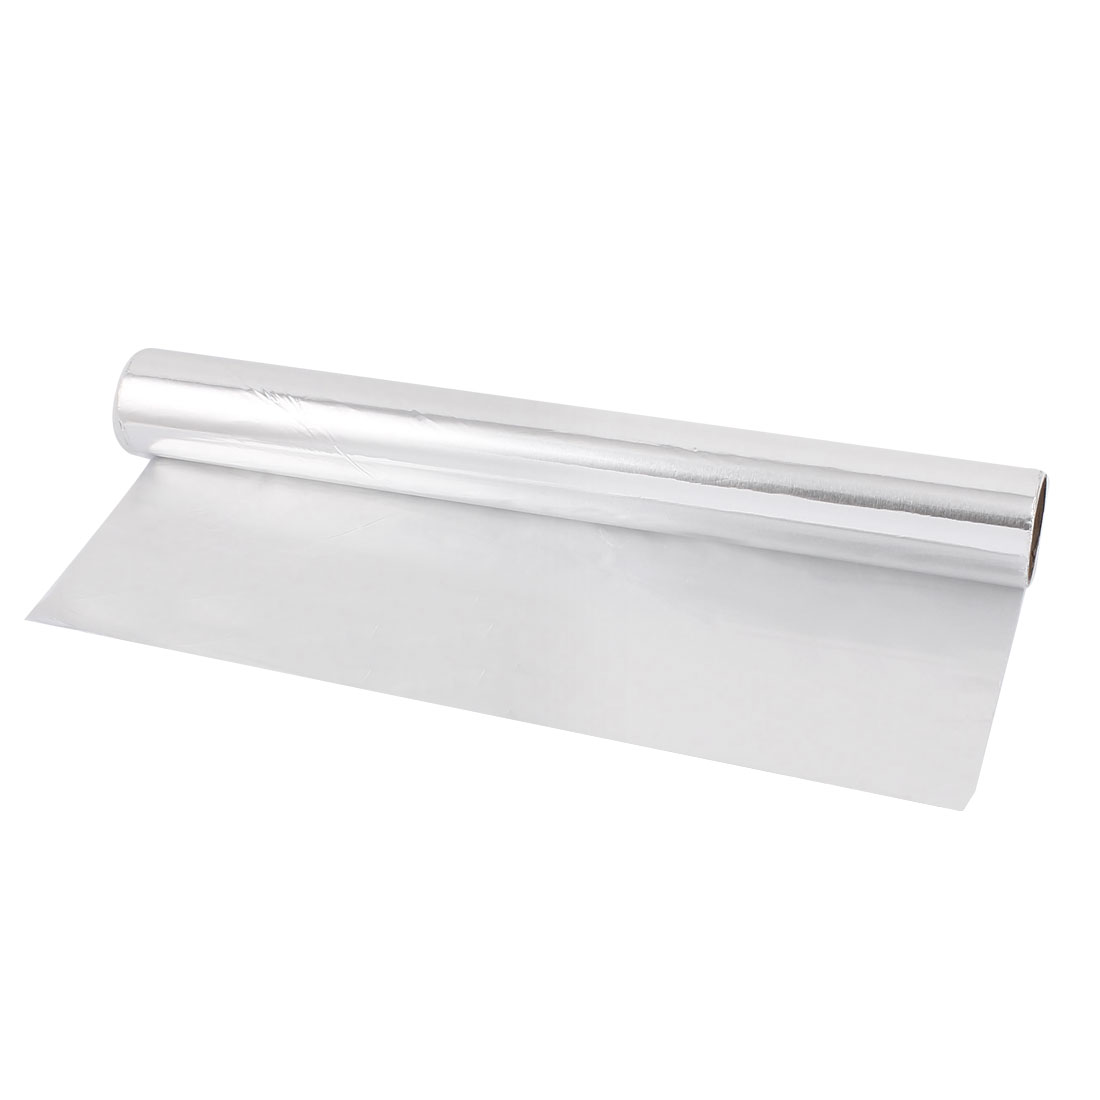 5M x 30cm Roll Oven BBQ Grill Baking Tinfoil Paper Aluminum Foil Silver Tone